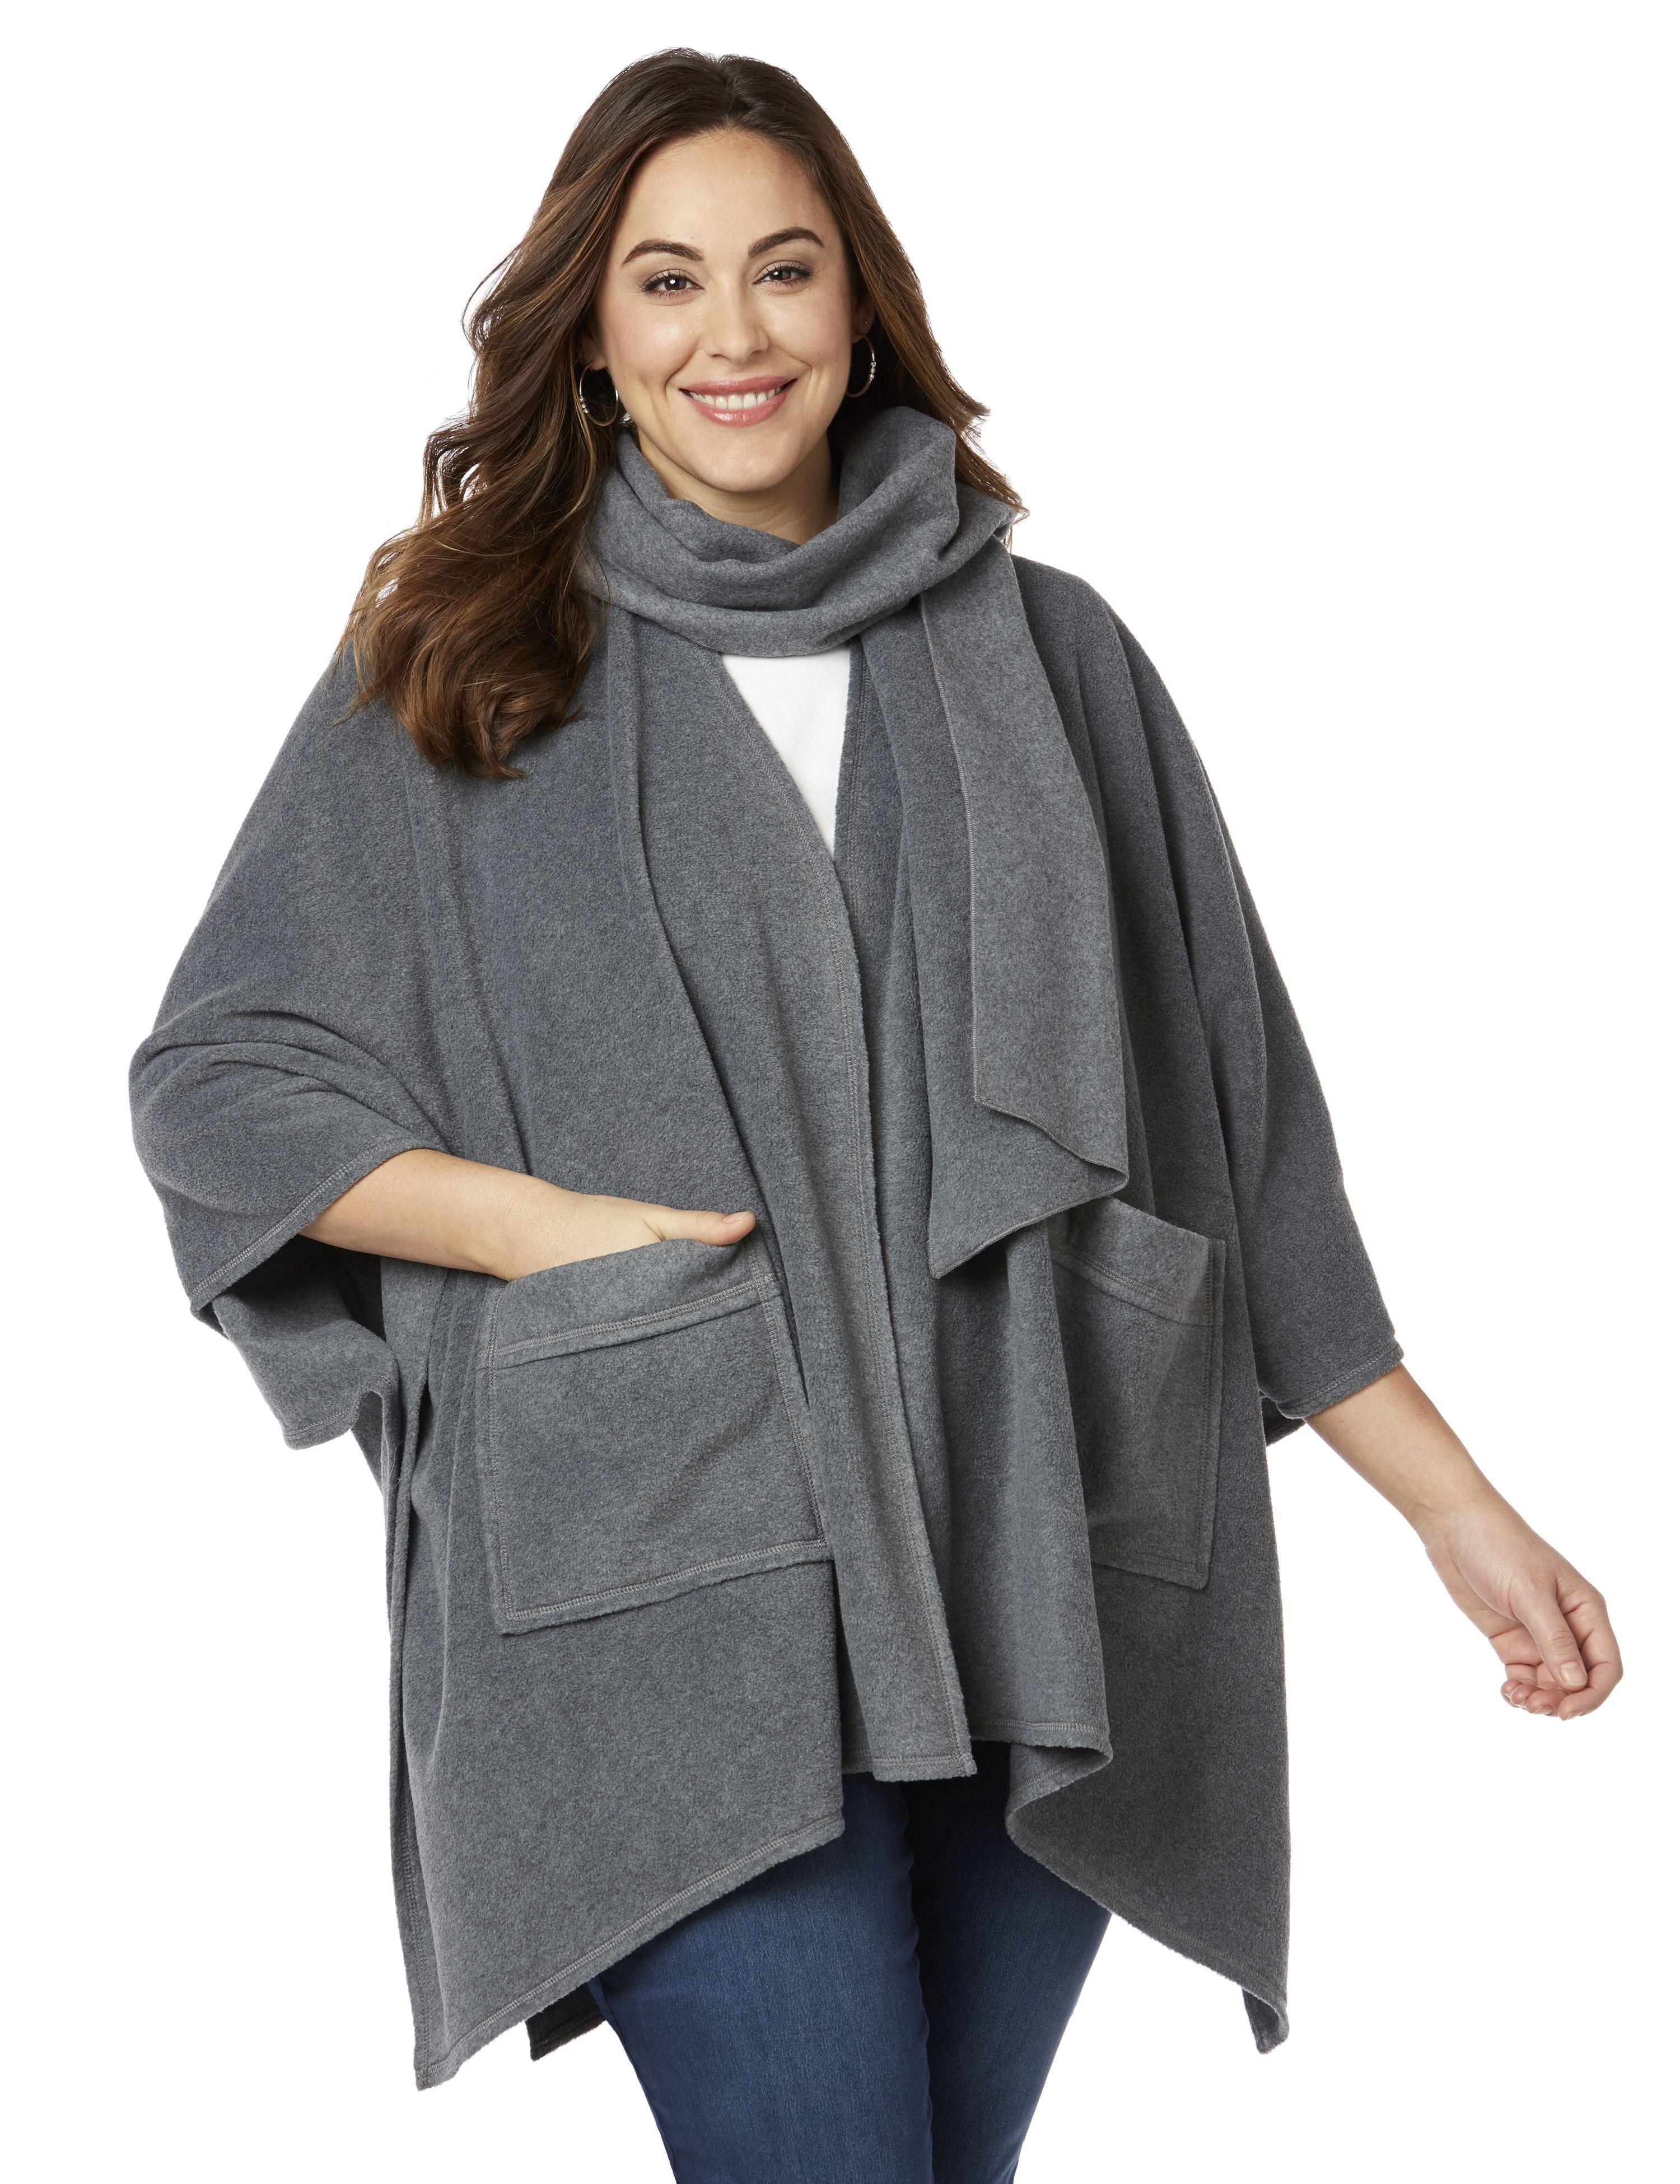 Fleece Poncho and Scarf Set 1083627 FLEECE PONCHO WITH REMOVABL MP-300086517